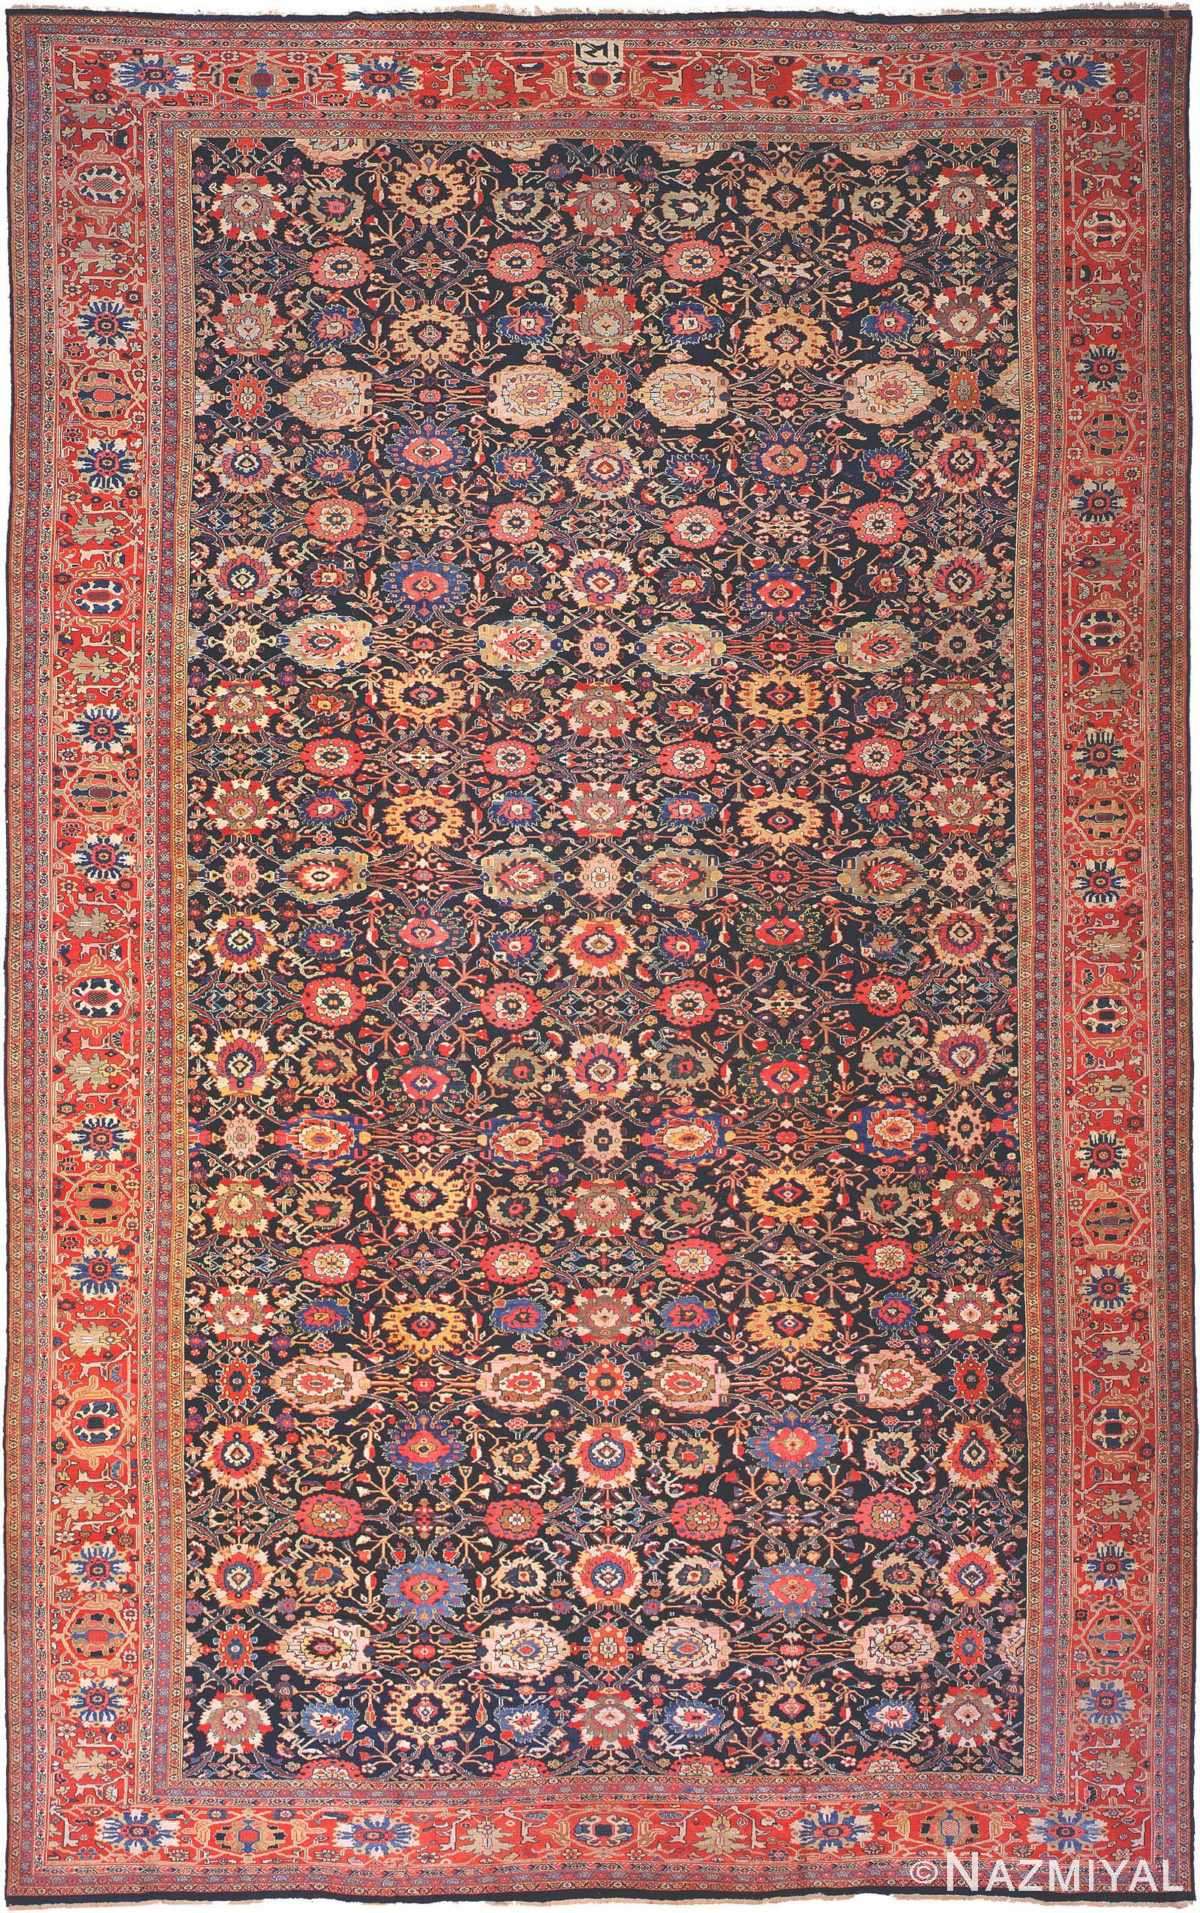 Antique Sultanabad Persian Carpet 3019 Nazmiyal